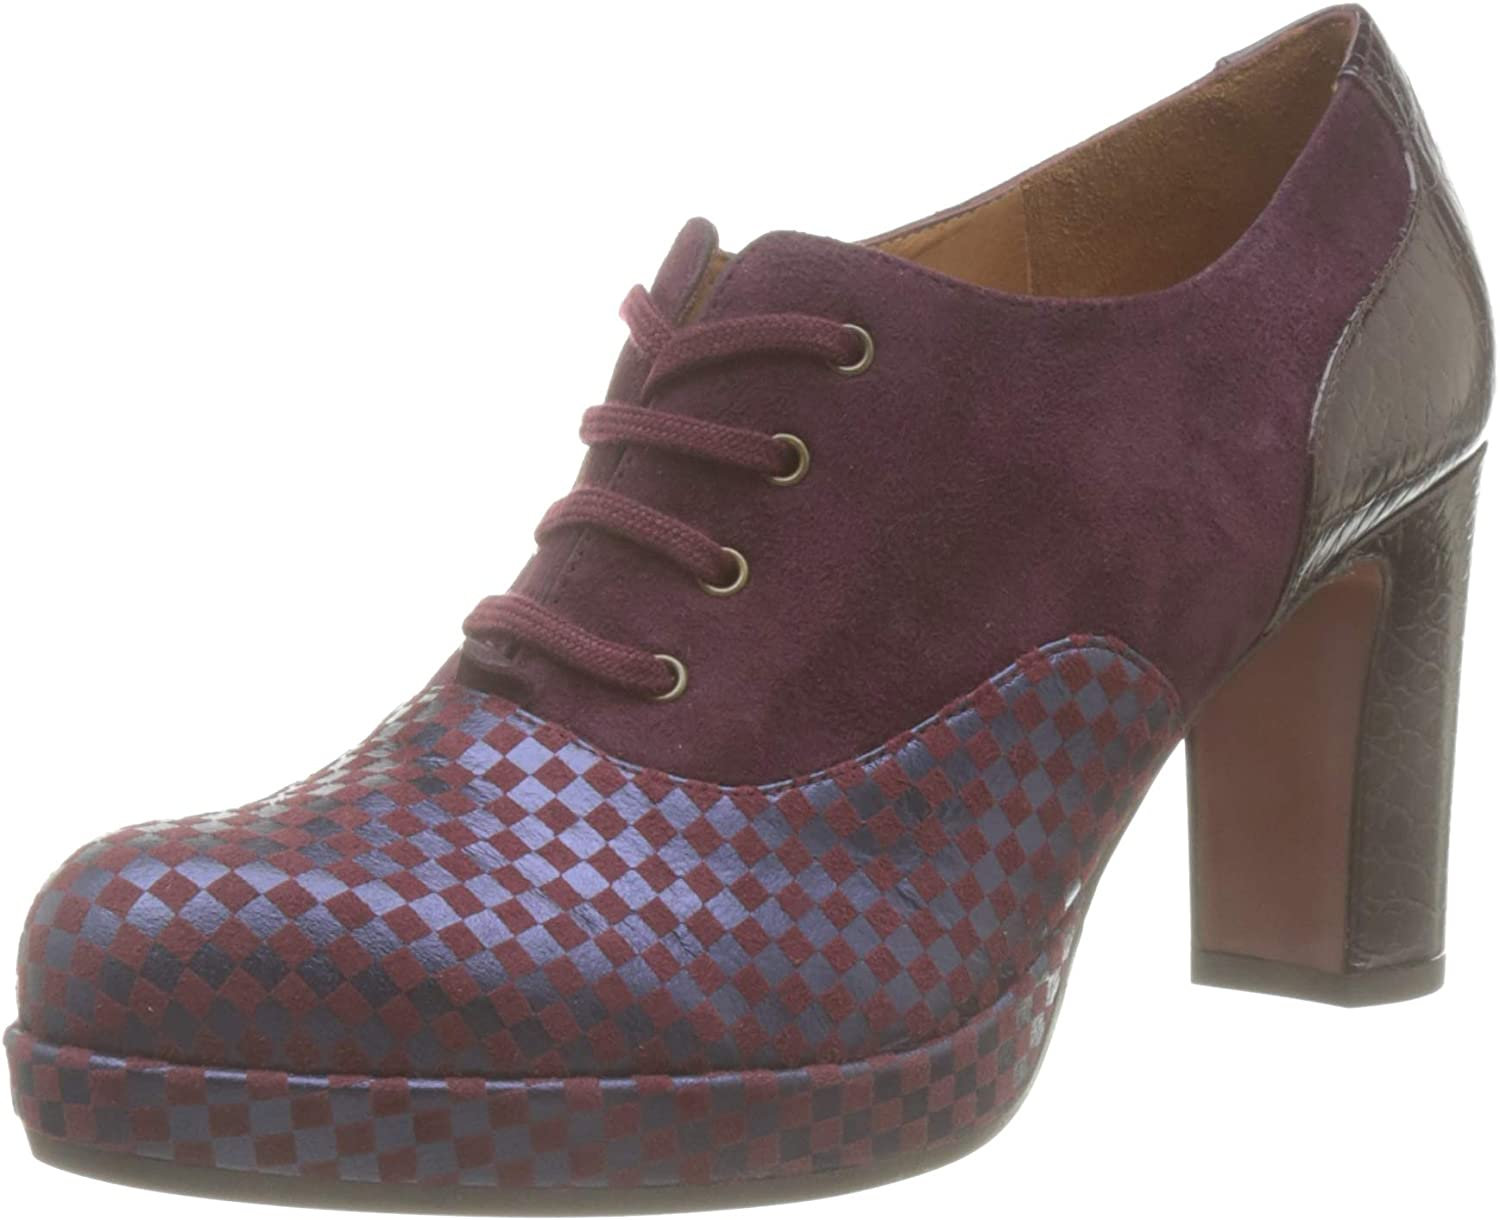 Chie Mihara Women's Oxford Lace-up